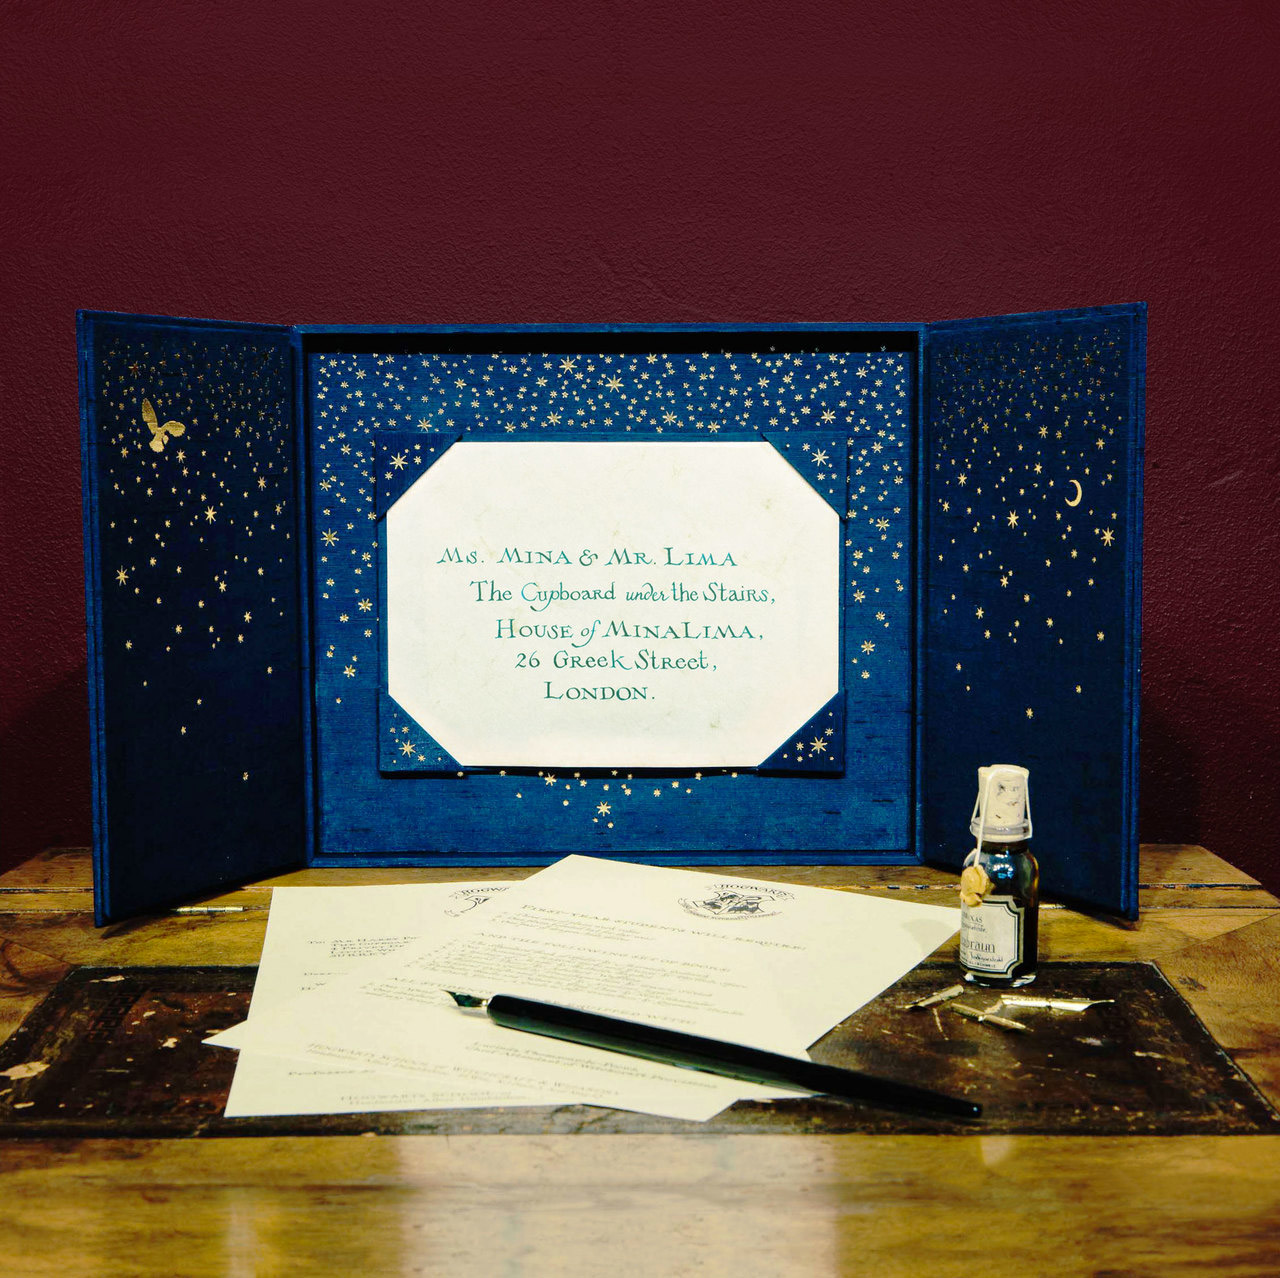 This hand-lettered, personalized Hogwarts acceptance letter is addressed to Ms. Mina and Mr. Lima.